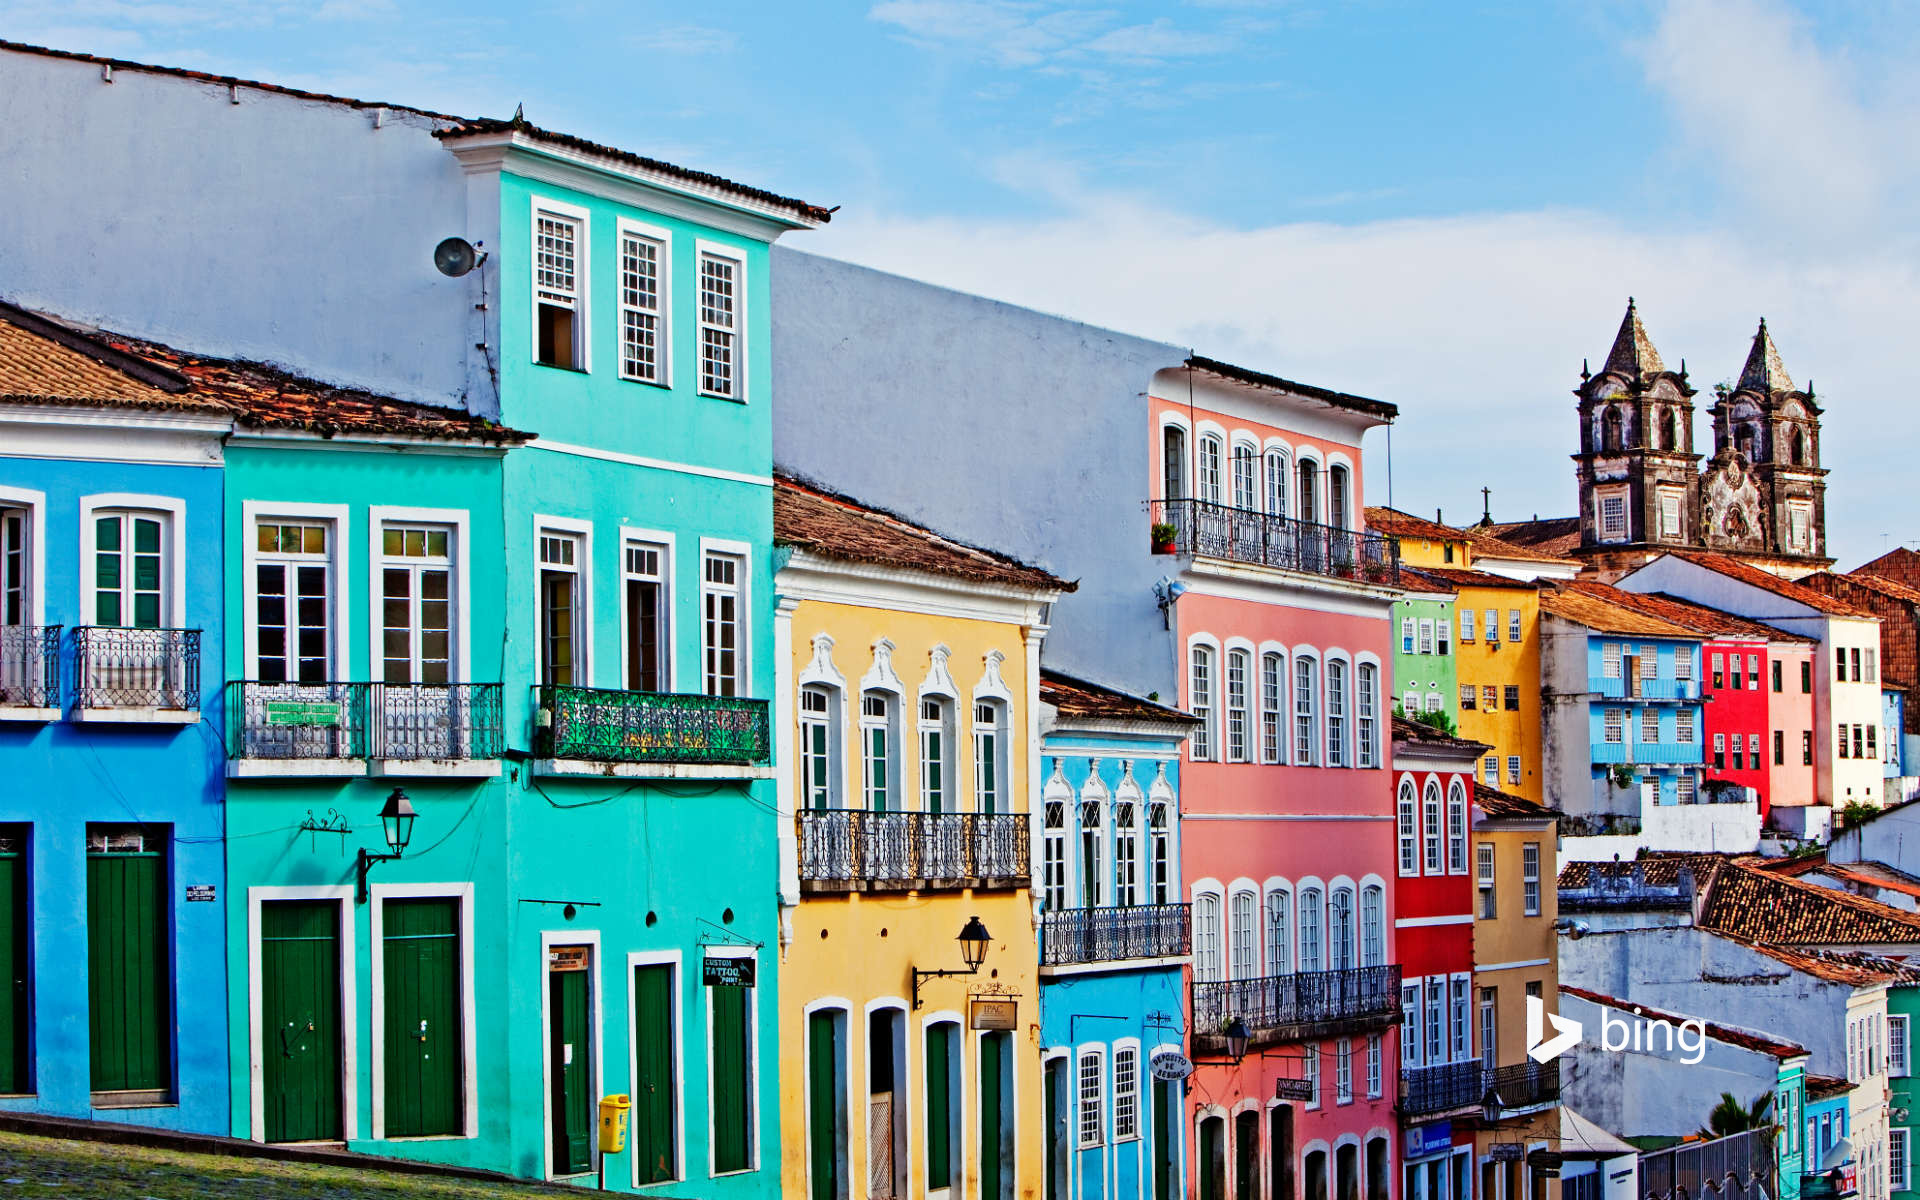 View of painted buildings, Salvador Bahia, Brazil